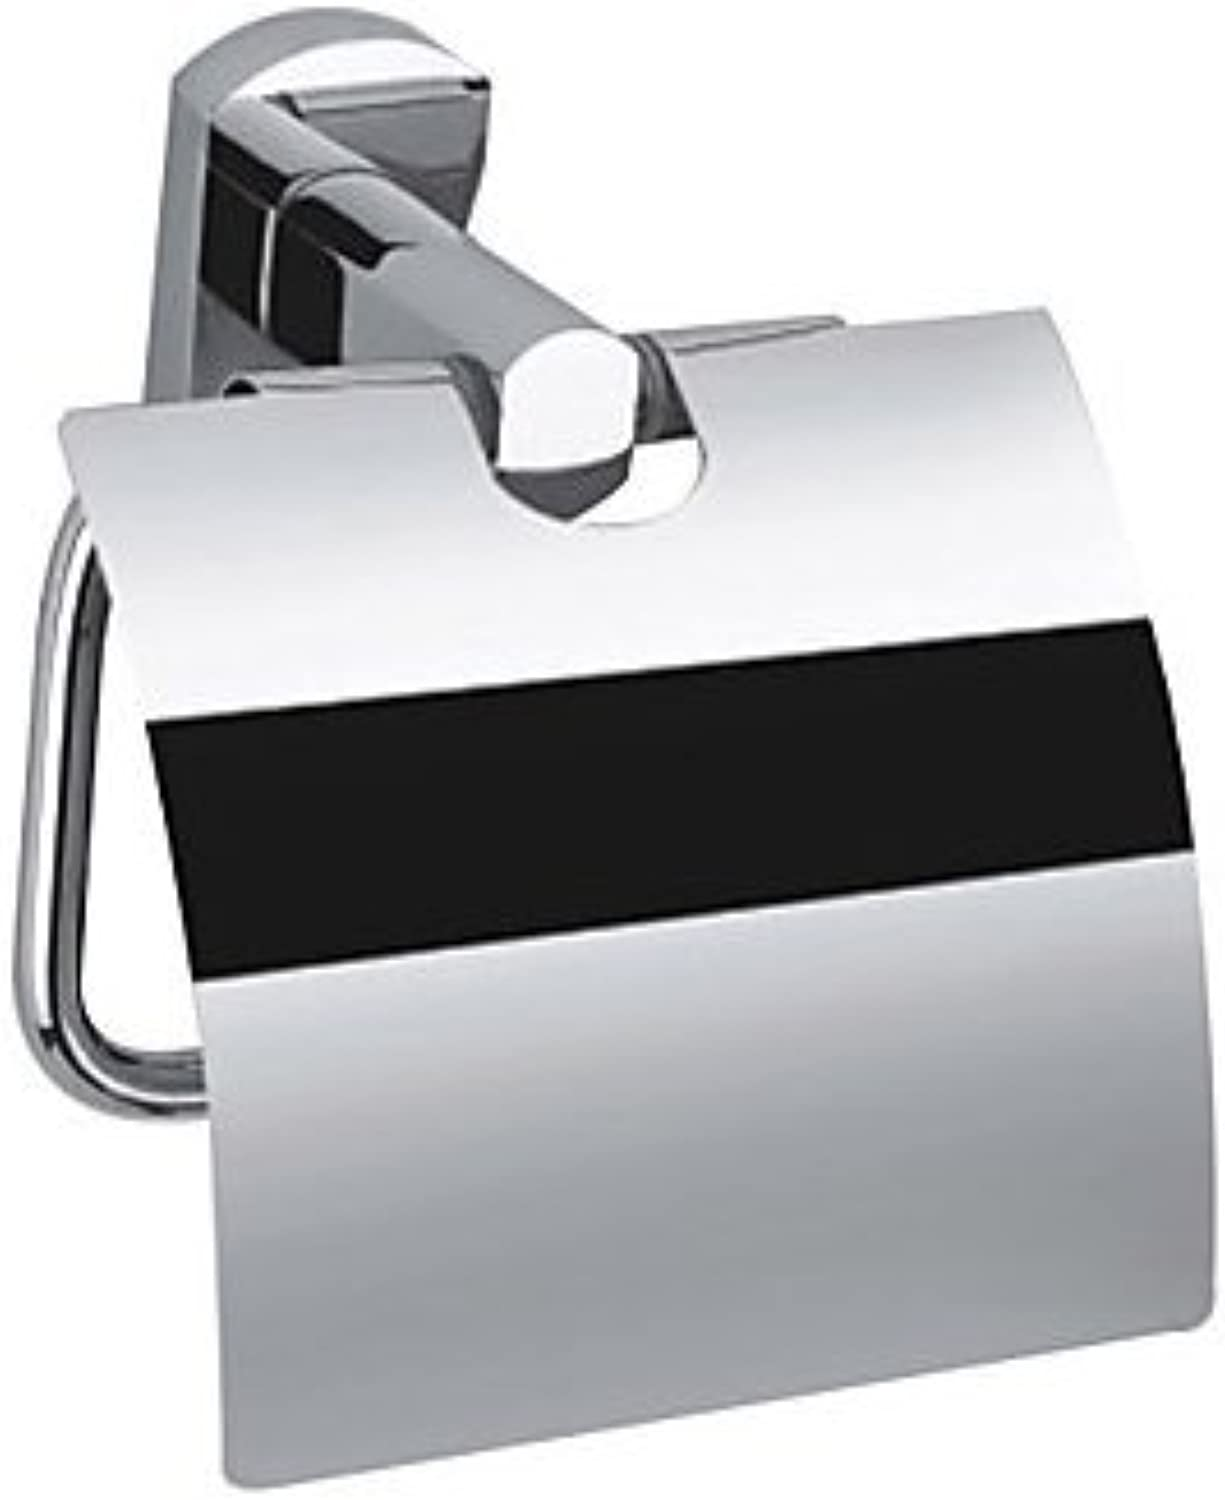 1Pc High Quality Contemporary Brass Toilet Paper Holder